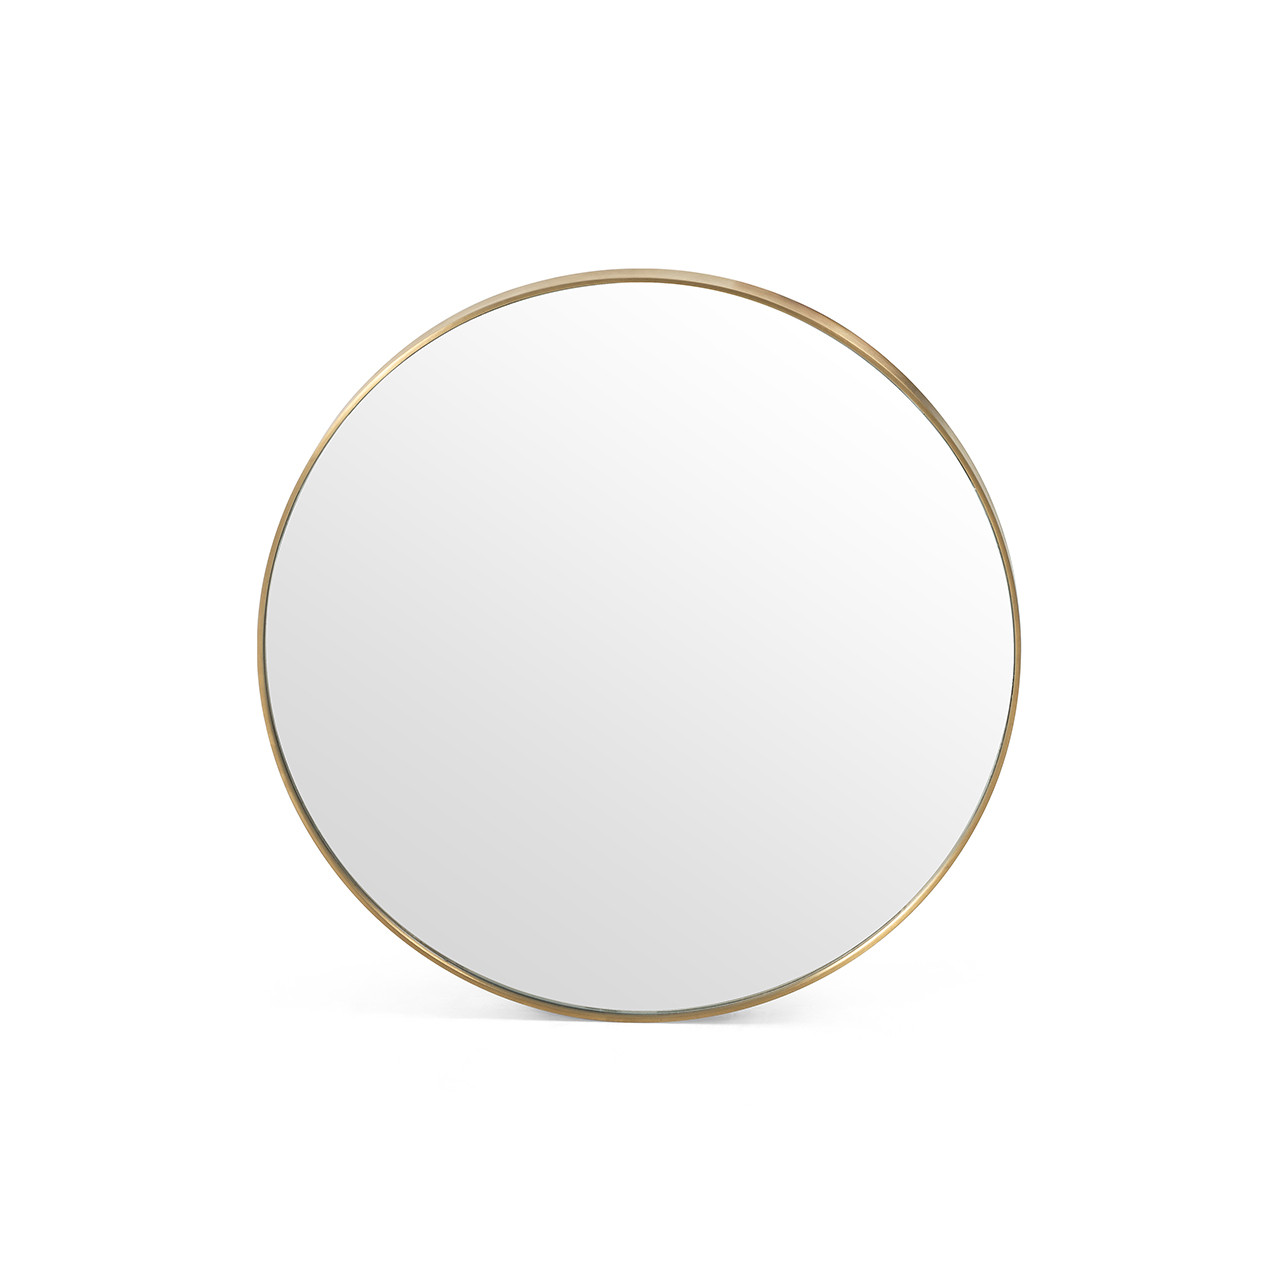 Bellvue Small Round Mirror - Polished Bras